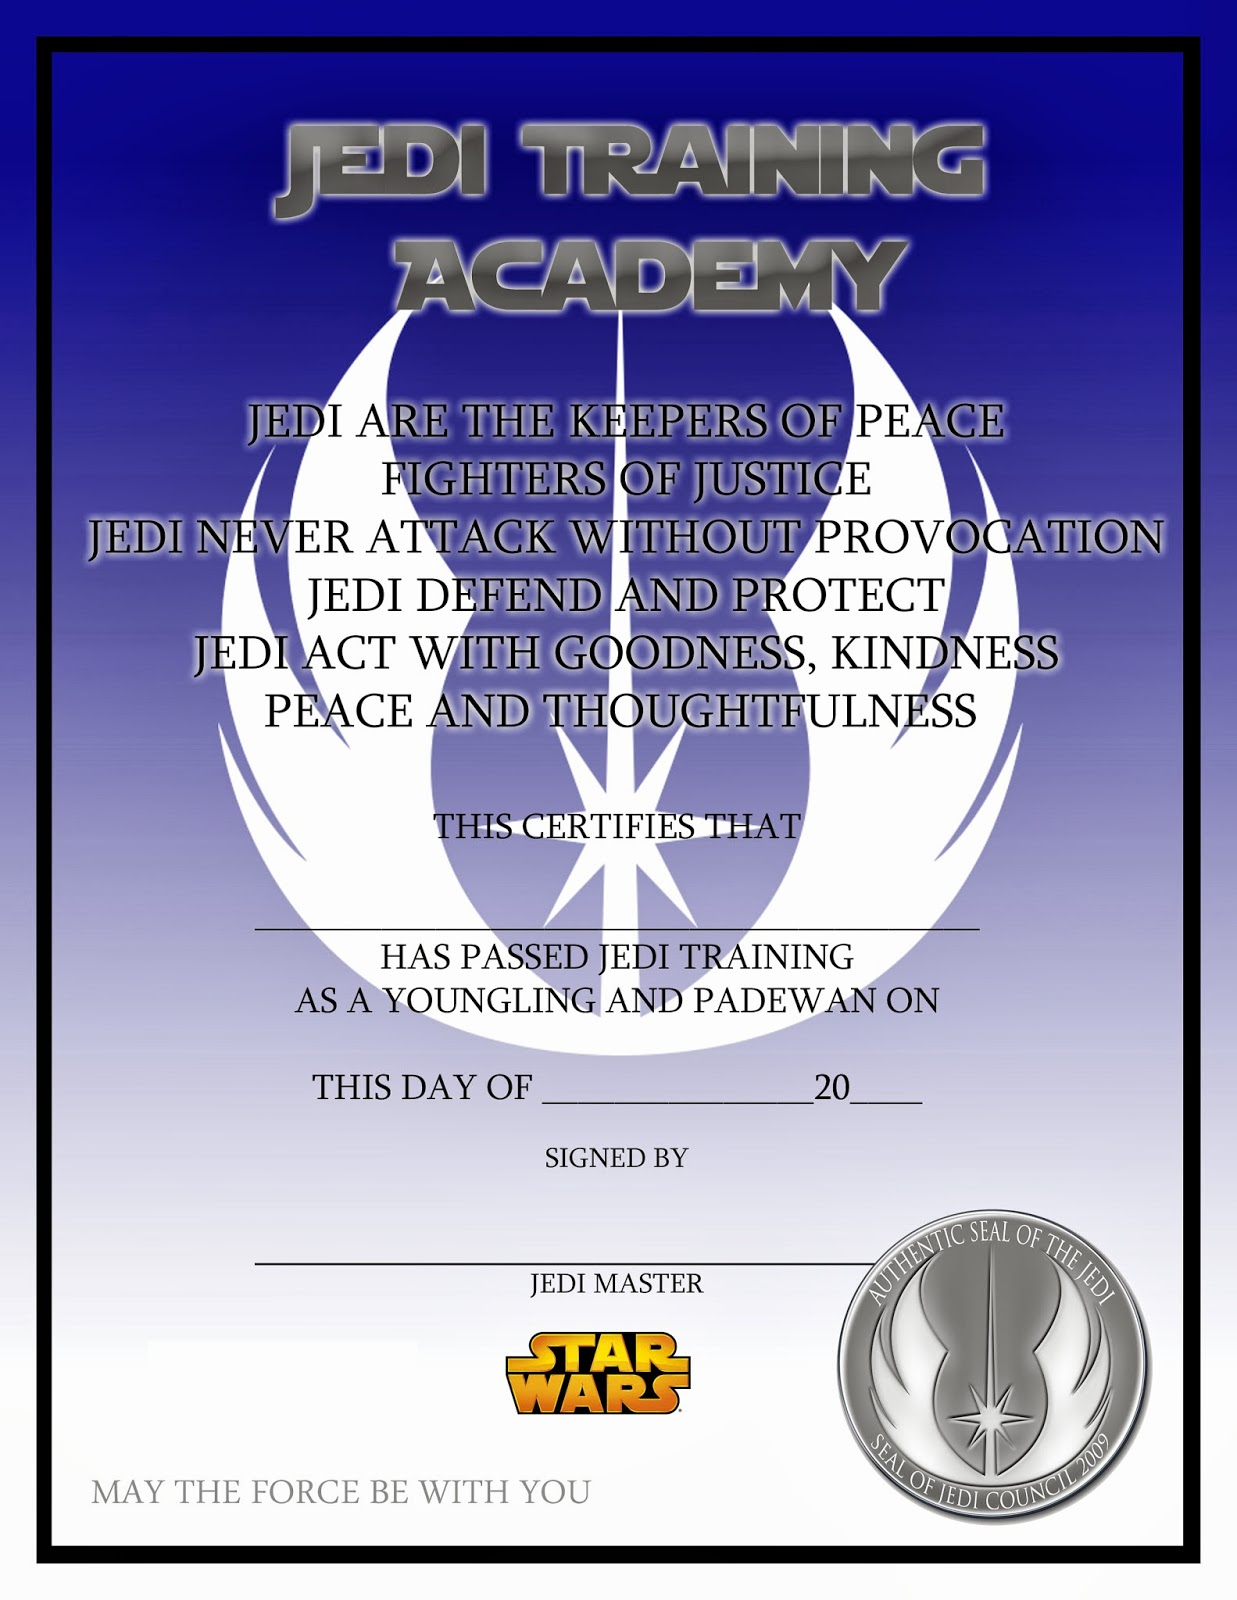 Lovely things star wars jedi training certificate free for Star wars jedi certificate template free